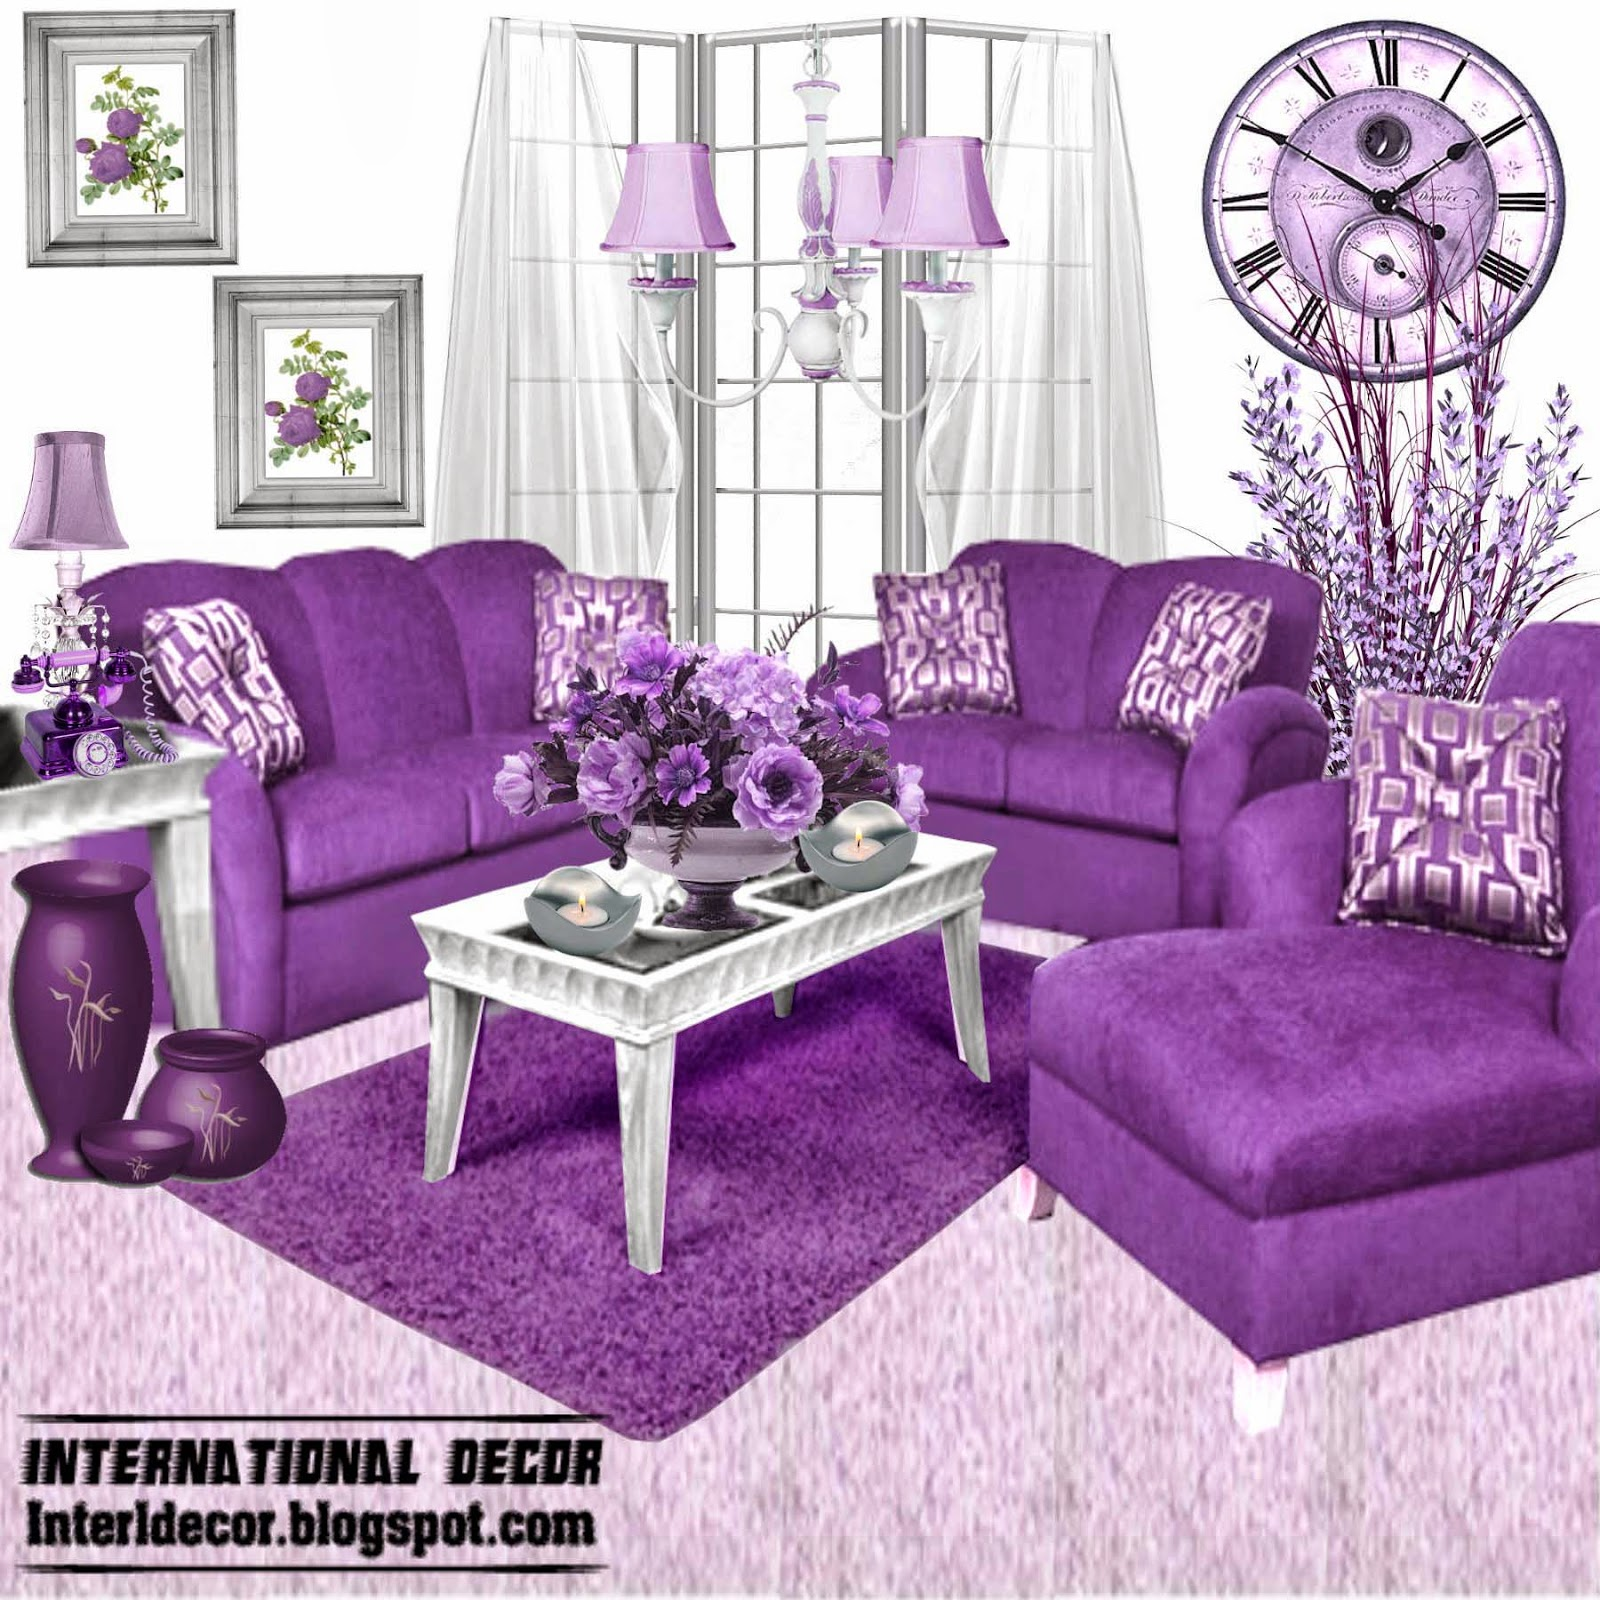 Luxury purple furniture sets sofas chairs for living for Living room couches